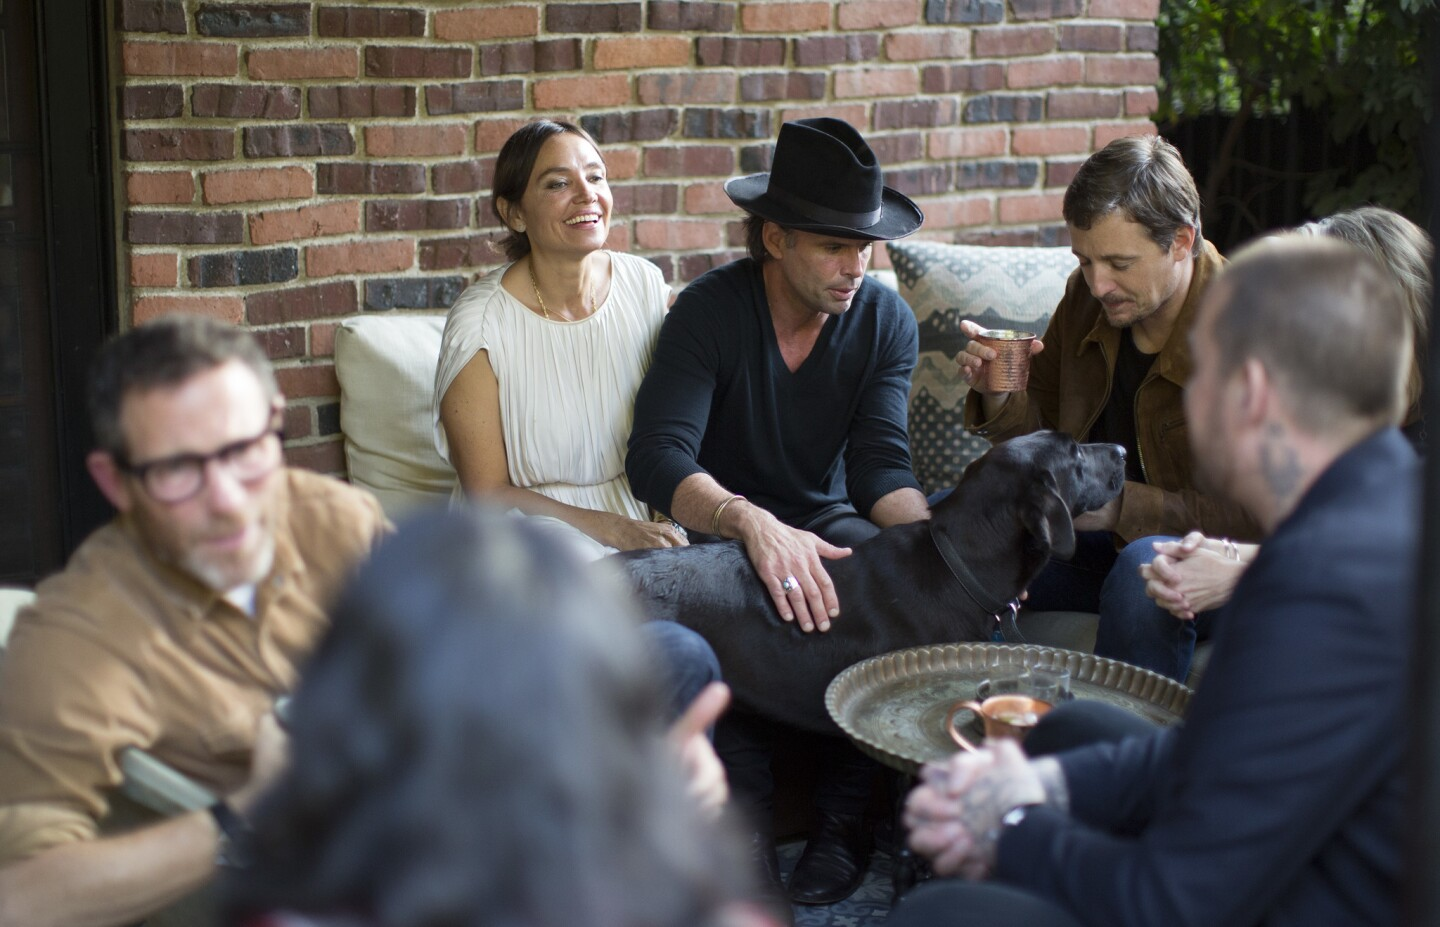 Actor Walton Goggins and wife Nadia Conners, left, entertain guests, including singer-songwriter Sturgill Simpson, right, at their Hollywood home.